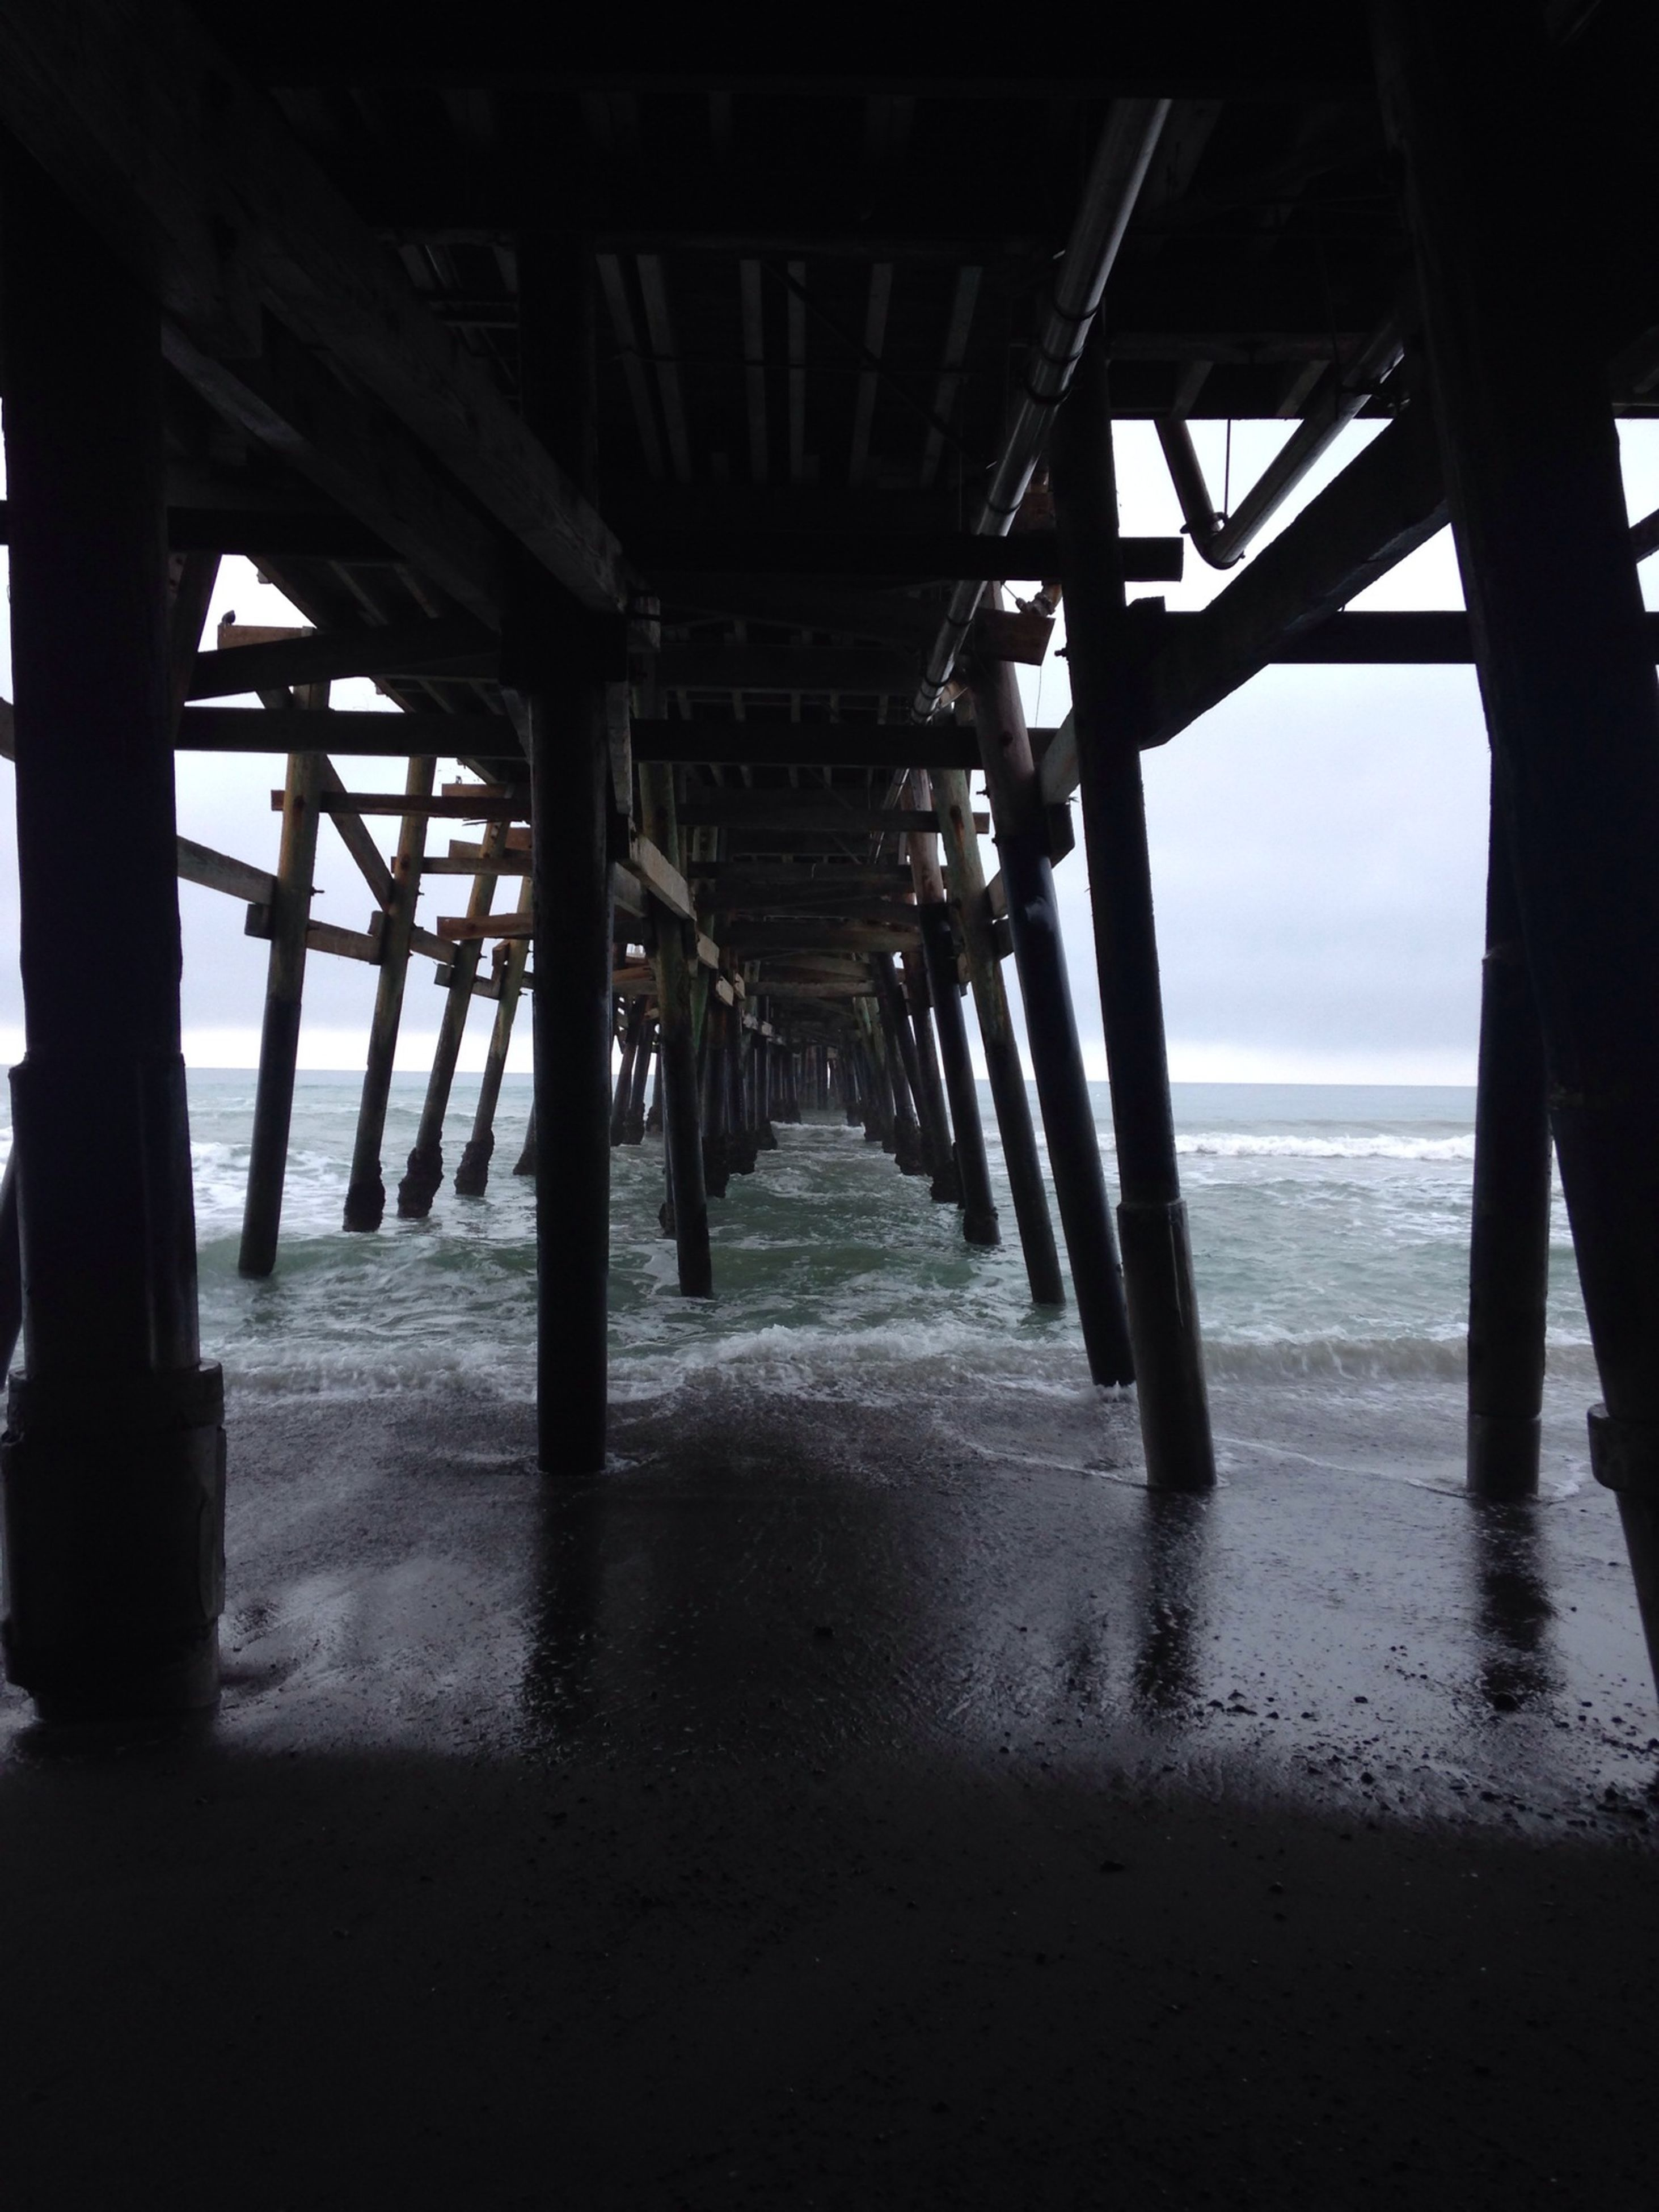 built structure, sea, architectural column, architecture, water, indoors, the way forward, diminishing perspective, beach, column, support, horizon over water, sky, pier, below, bridge - man made structure, in a row, connection, long, vanishing point